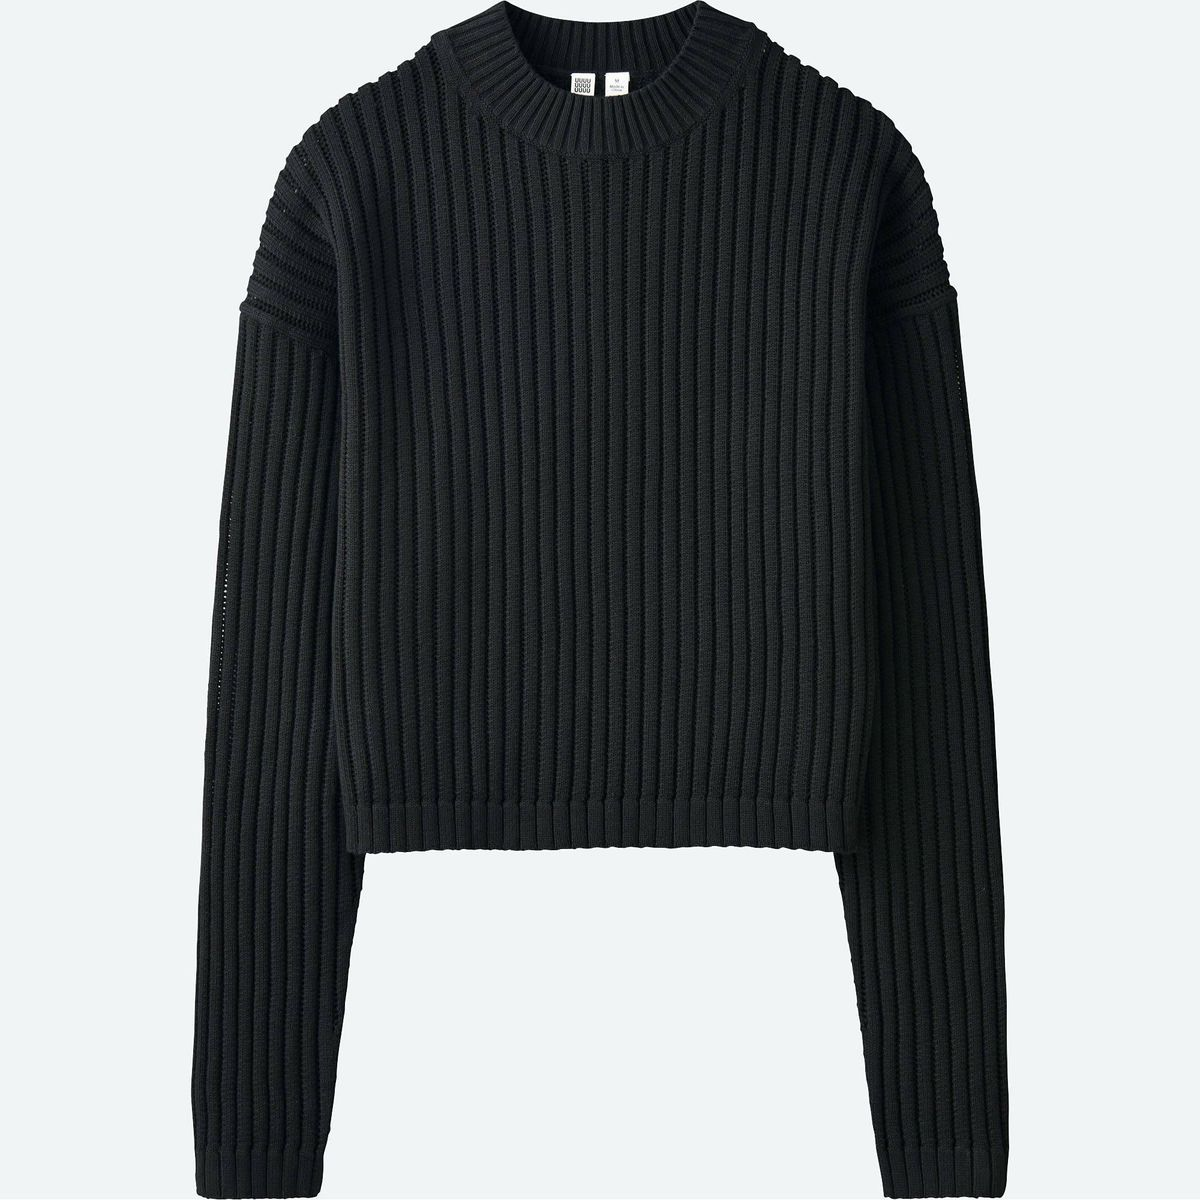 8f76129e6 The New Uniqlo U Collection Is Honestly Great - Racked